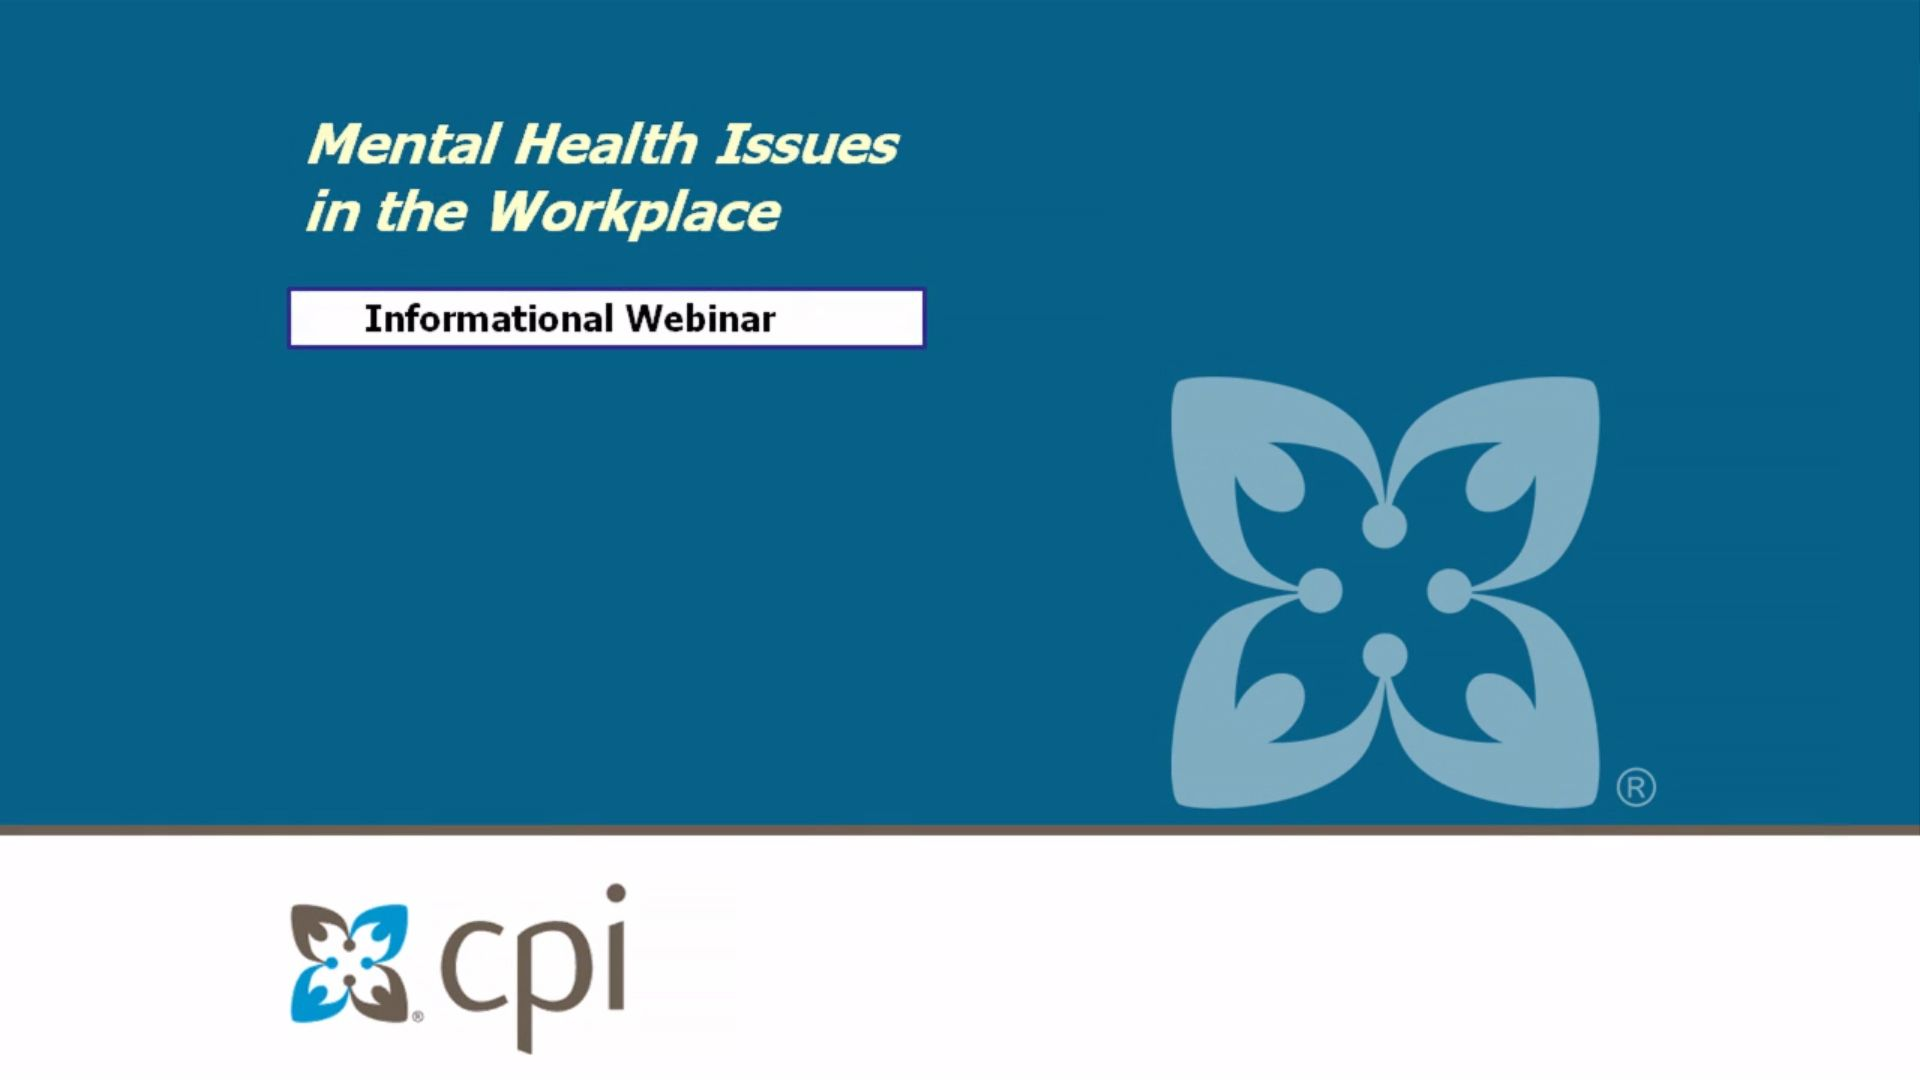 Mental Health Issues in the Workplace